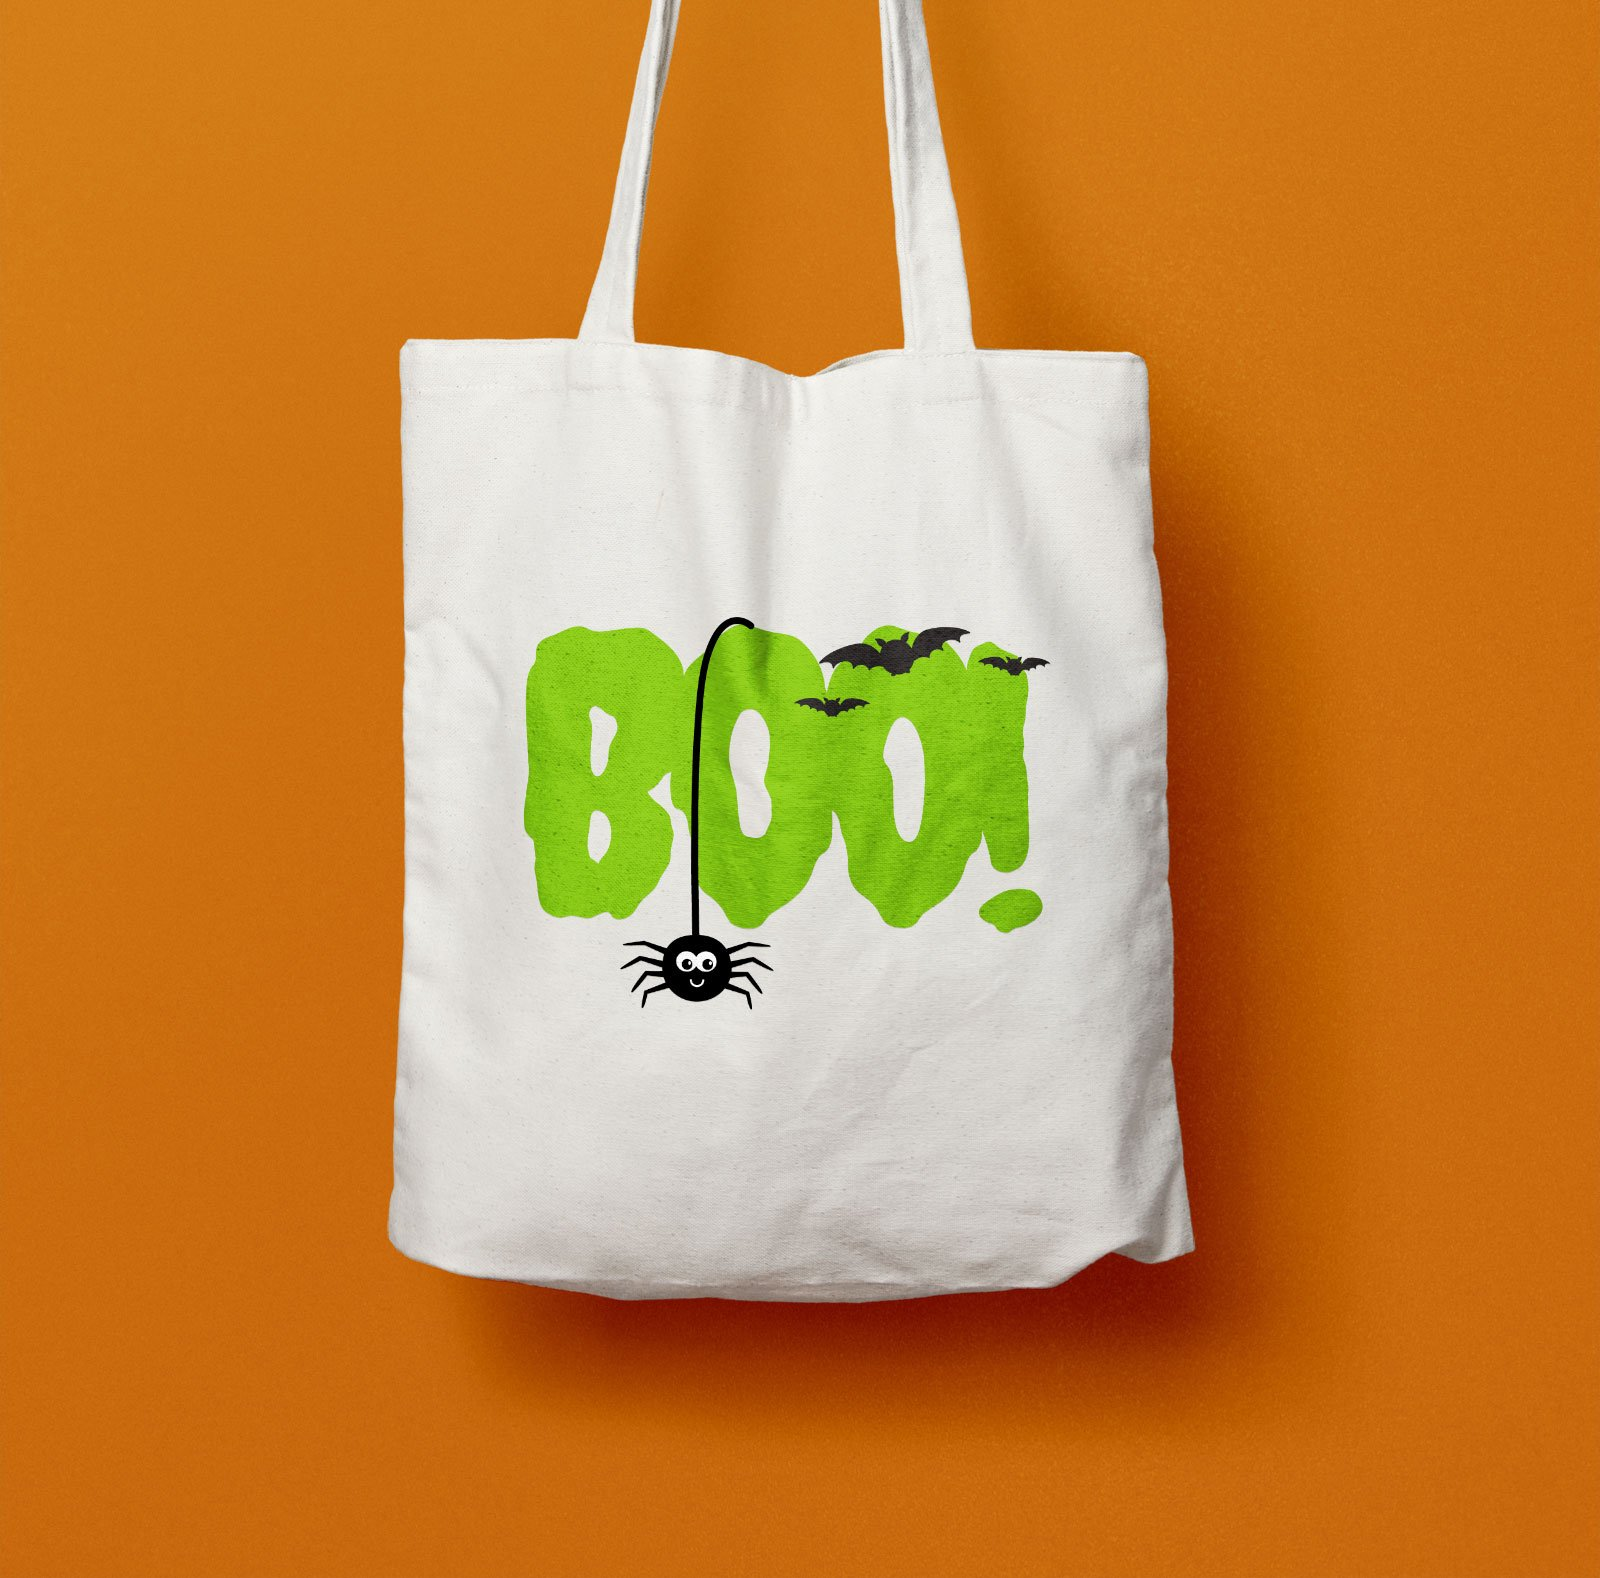 Halloween Canvas Trick-or-Treat Bags with Heat Transfer